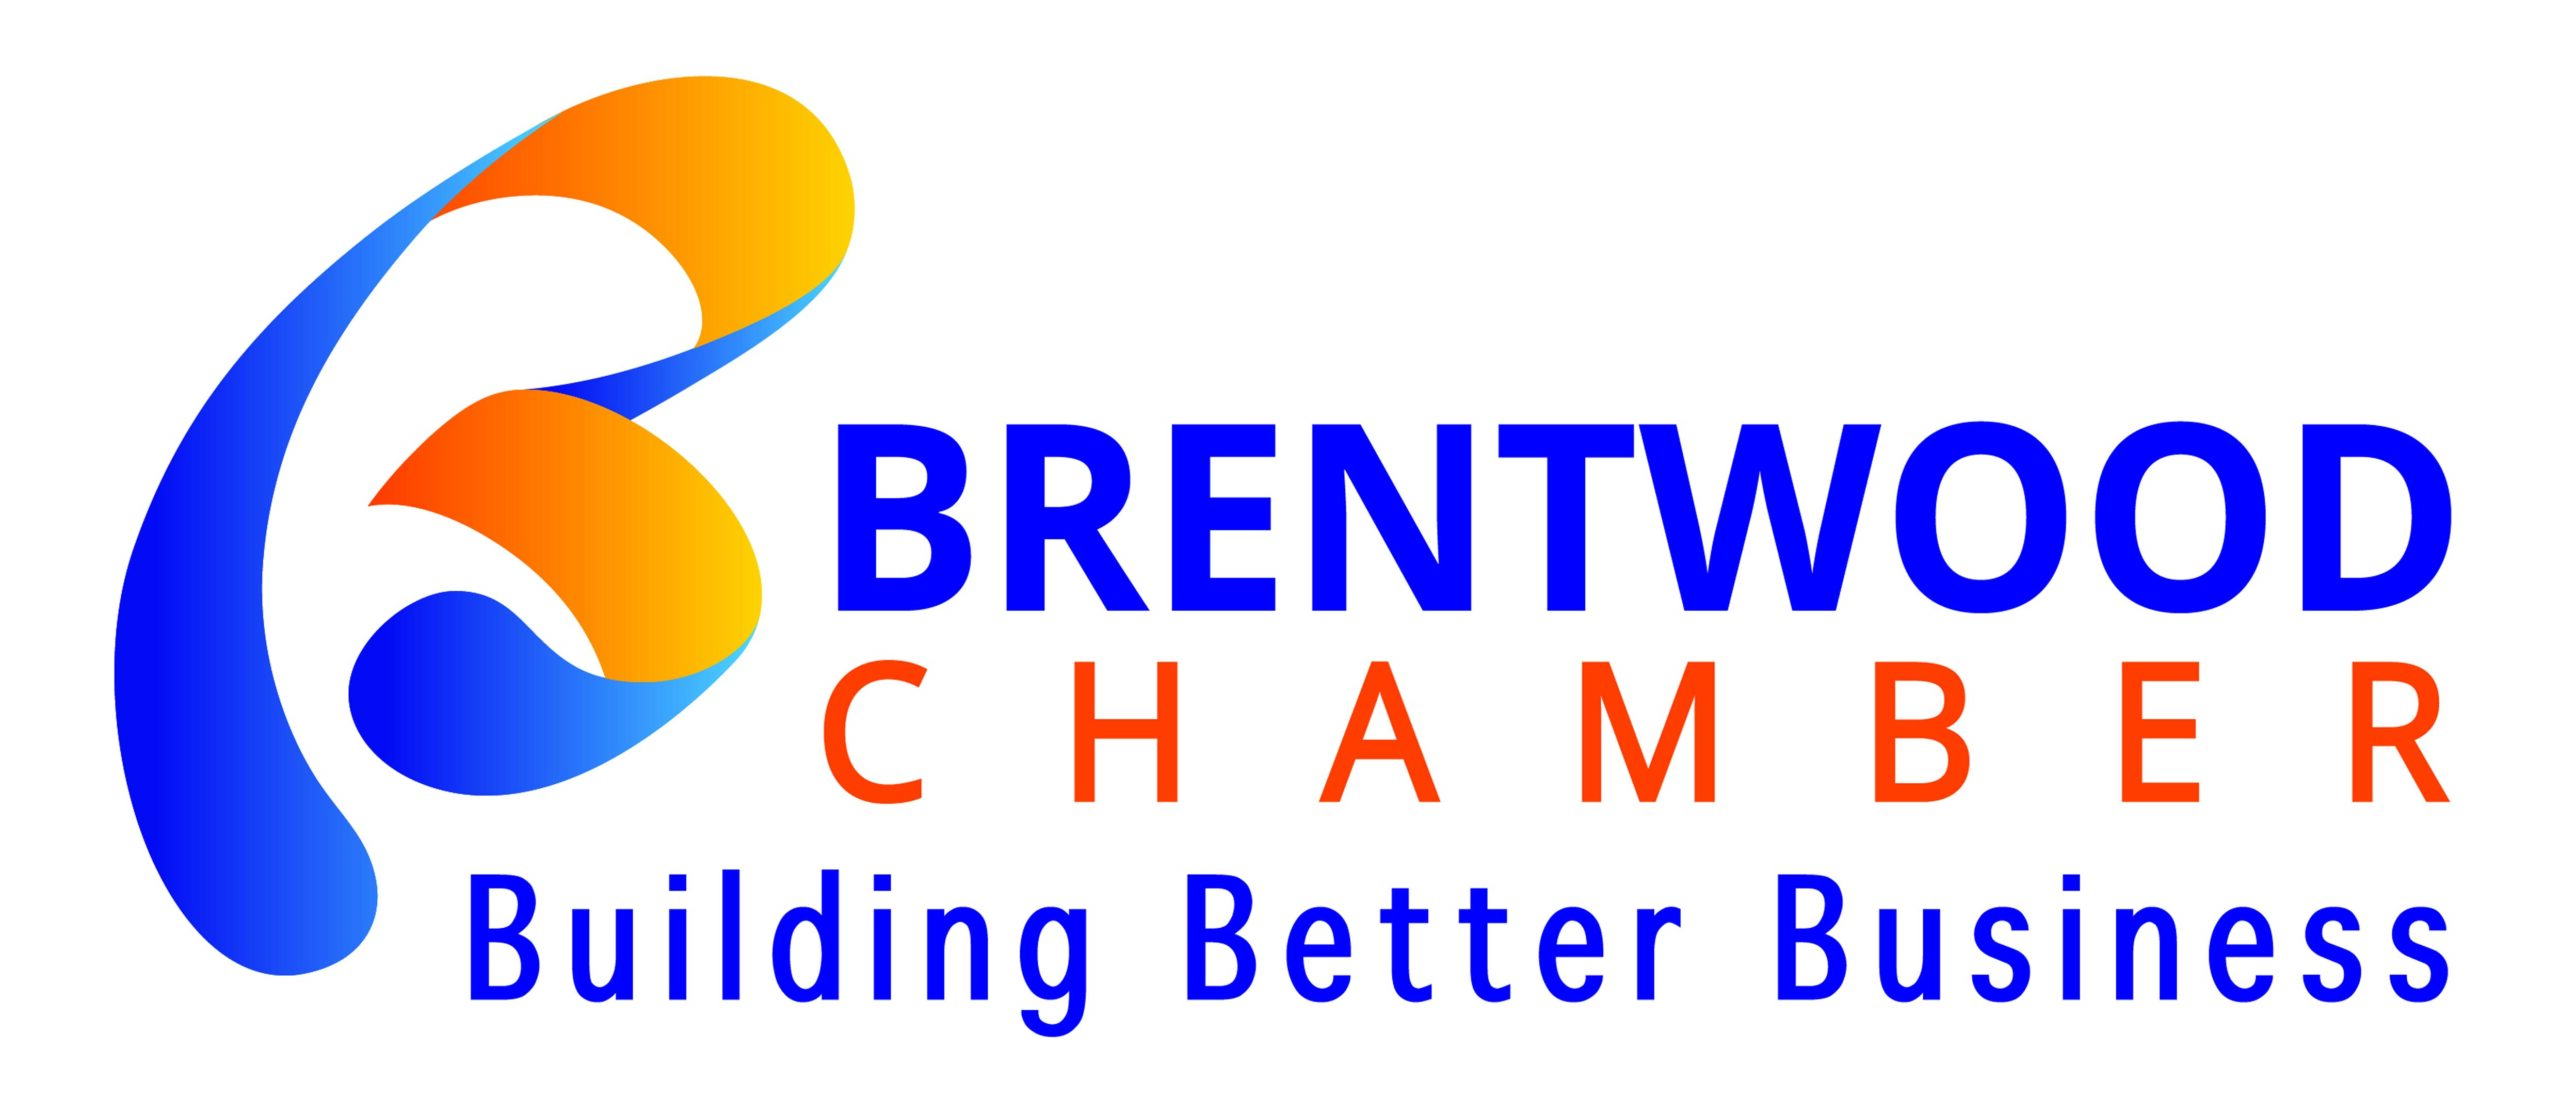 Brentwood Chamber Logo with Strapline